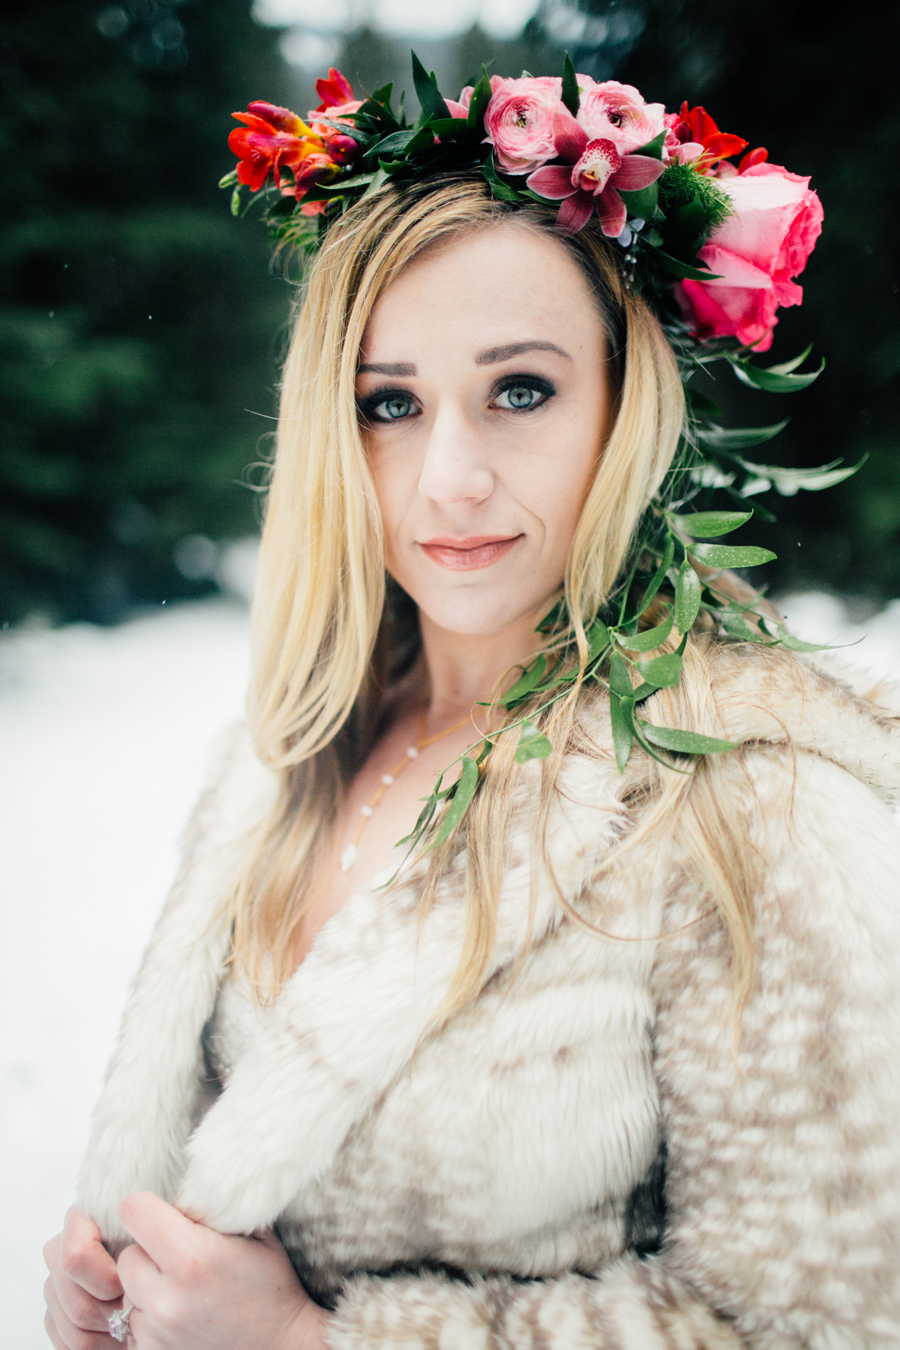 023-snow-styled-session-local-networking-maketing-baker-katheryn-moran-photography.jpg